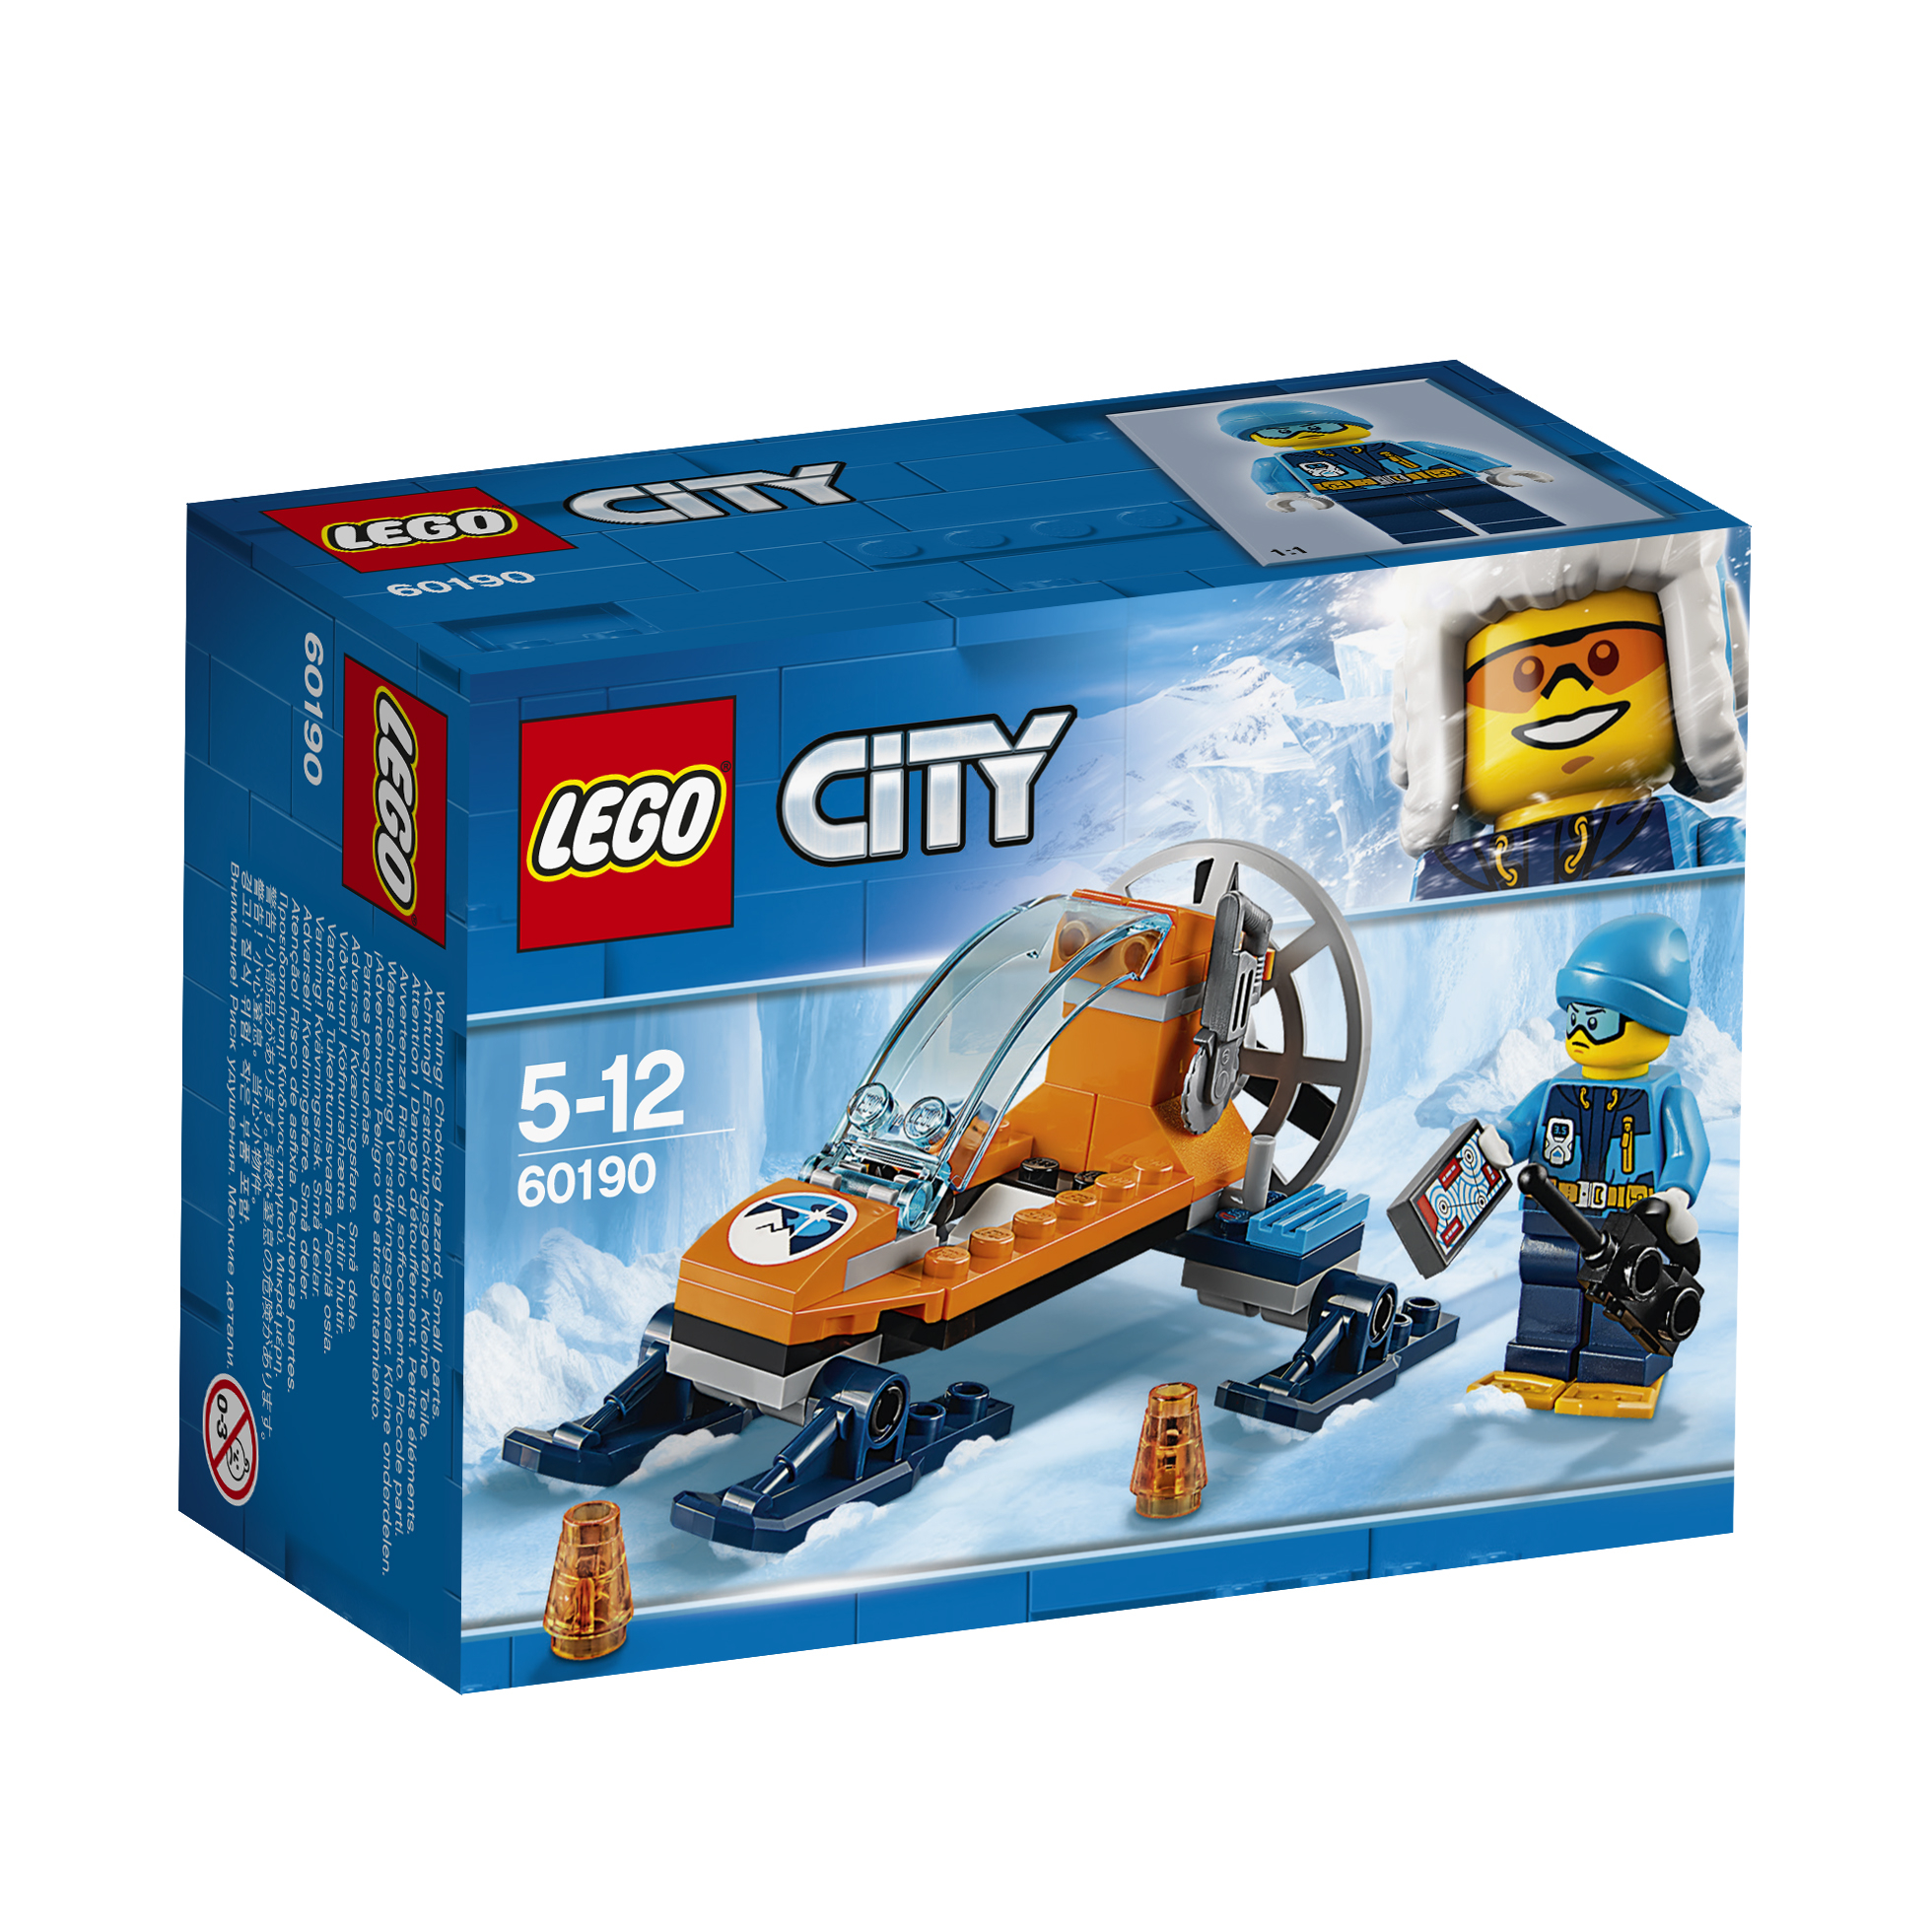 LEGO LEGO Конструктор LEGO City Arctic Expedition 60190 Аэросани model building kits compatible with lego city formula car 668 3d blocks educational model